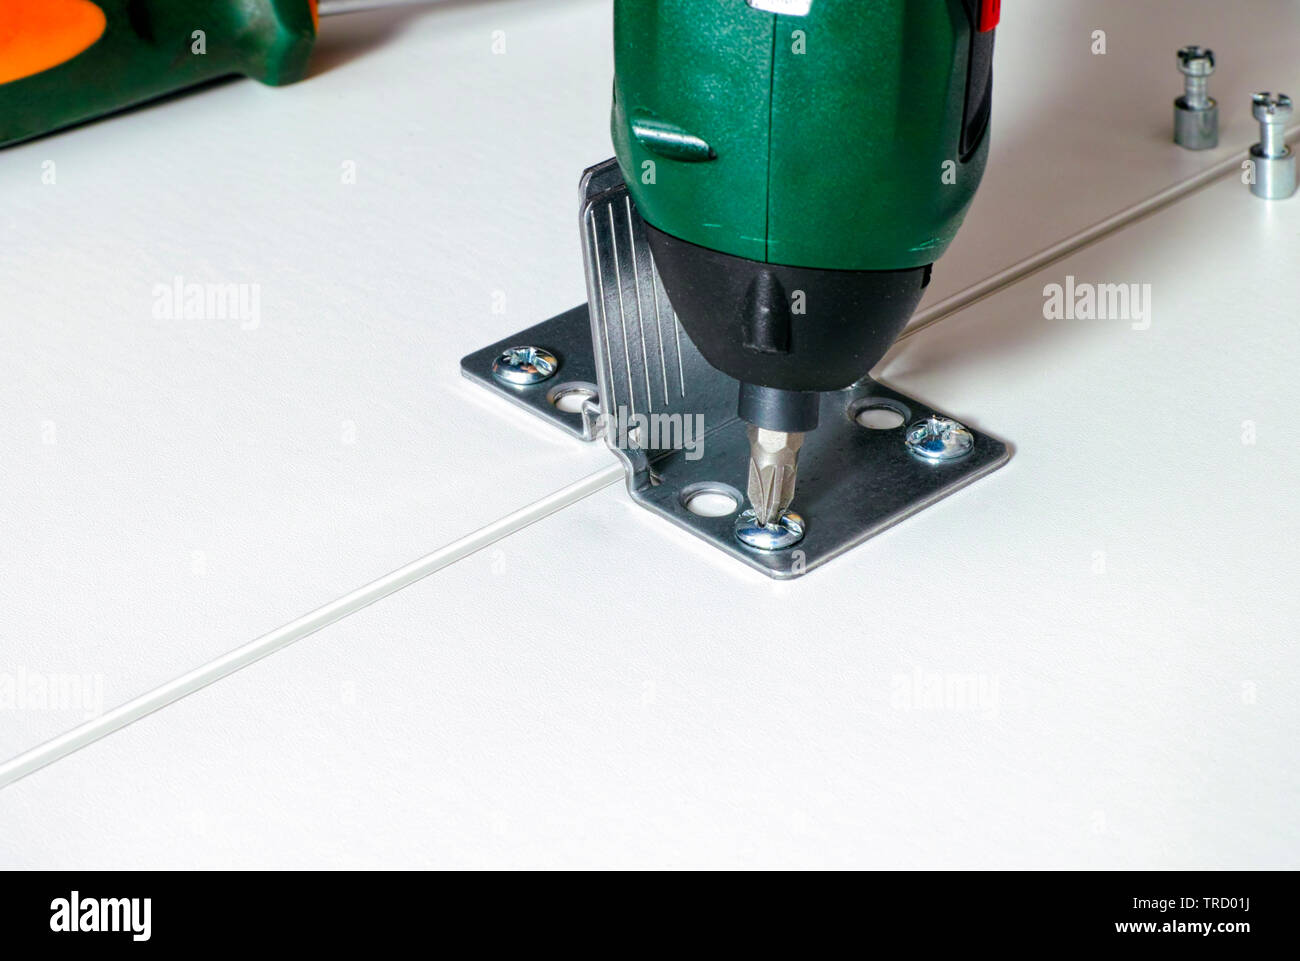 Screw drill twisting the screw on the furniture. Close-up. - Stock Image